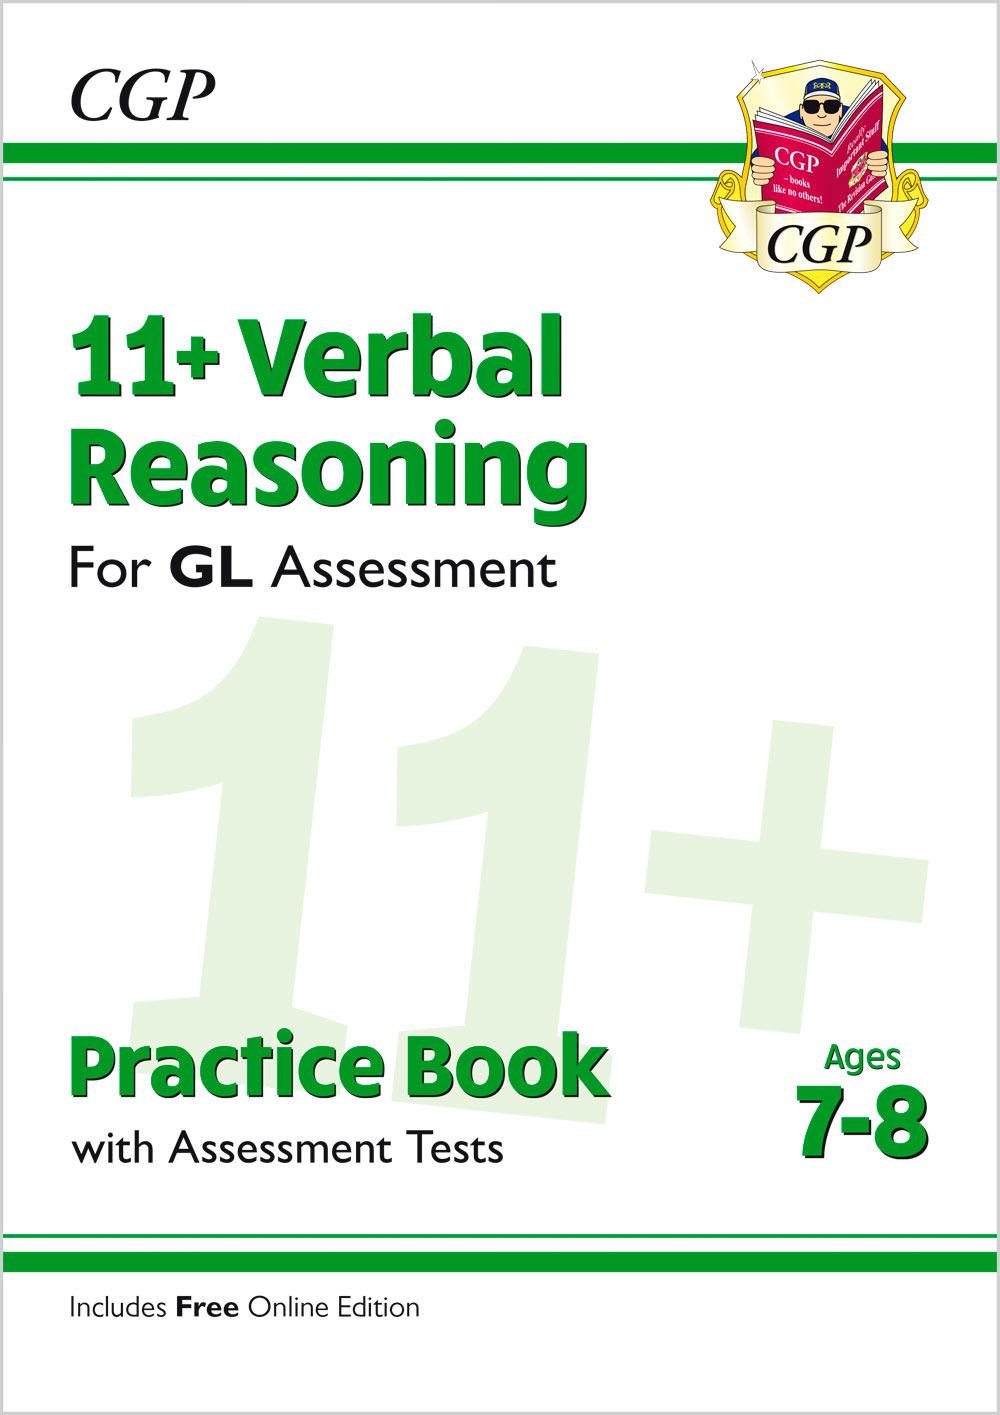 V3QE2 - 11+ GL Verbal Reasoning Practice Book & Assessment Tests - Ages 7-8 (with Online Edition)